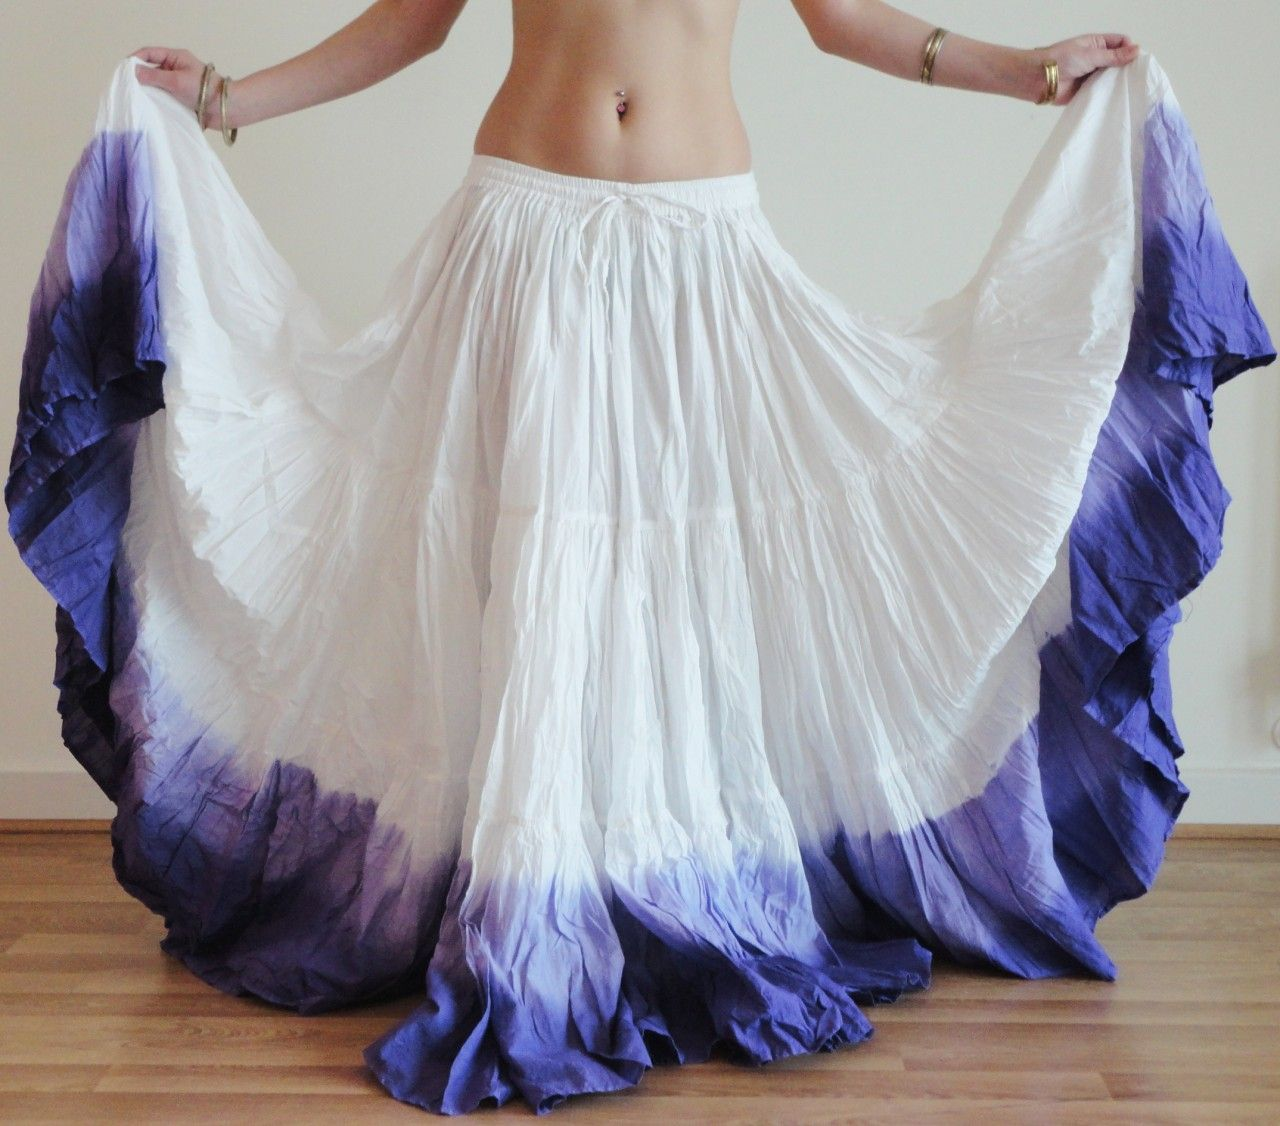 Details about LONG 25 Yard 4 Tier Skirt Belly Dance Gypsy Skirt 40″ Height